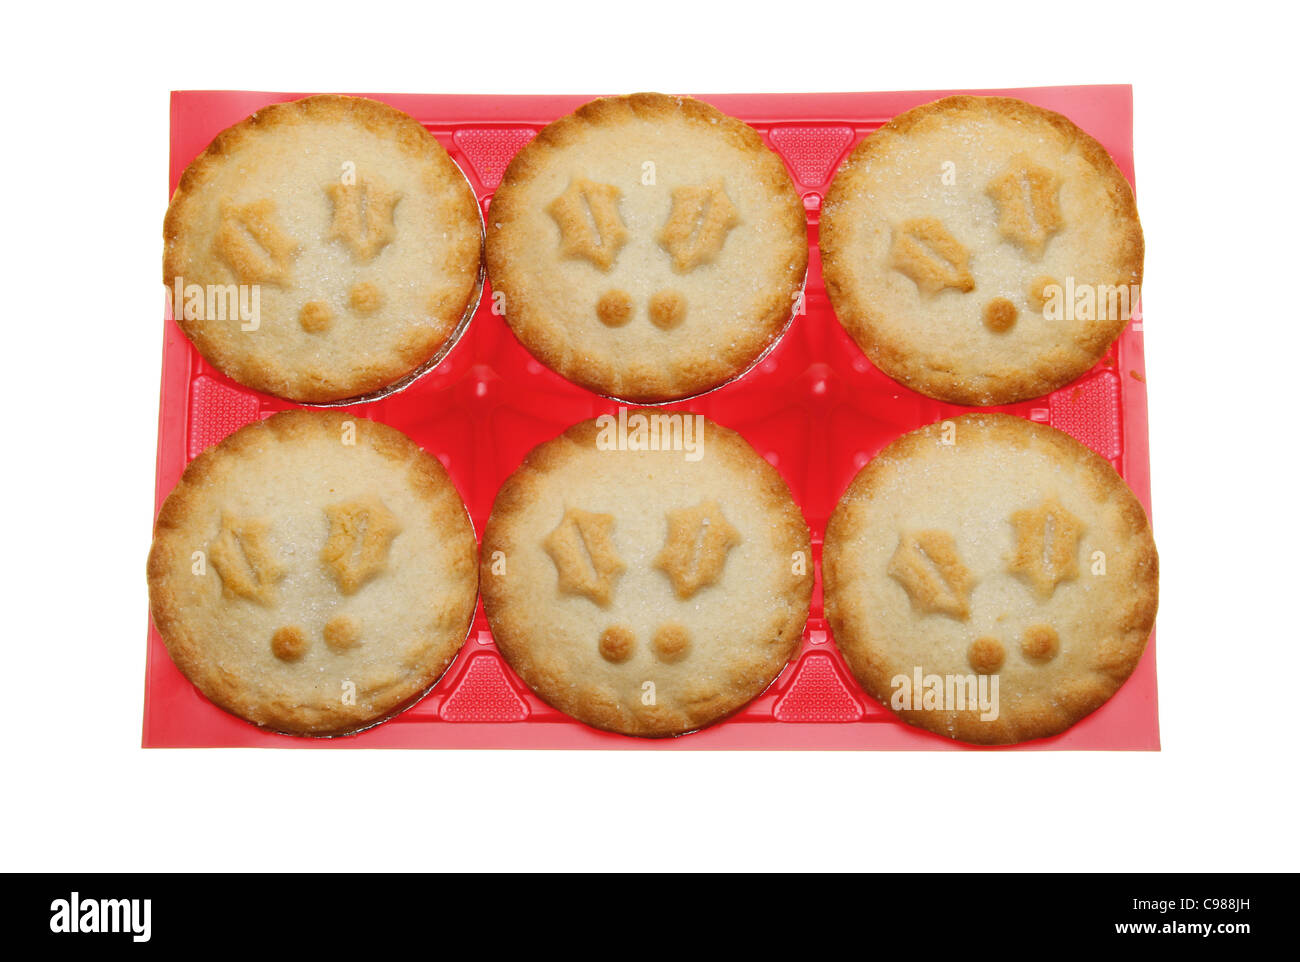 Christmas themed mince pies in a red plastic tray isolated against white - Stock Image